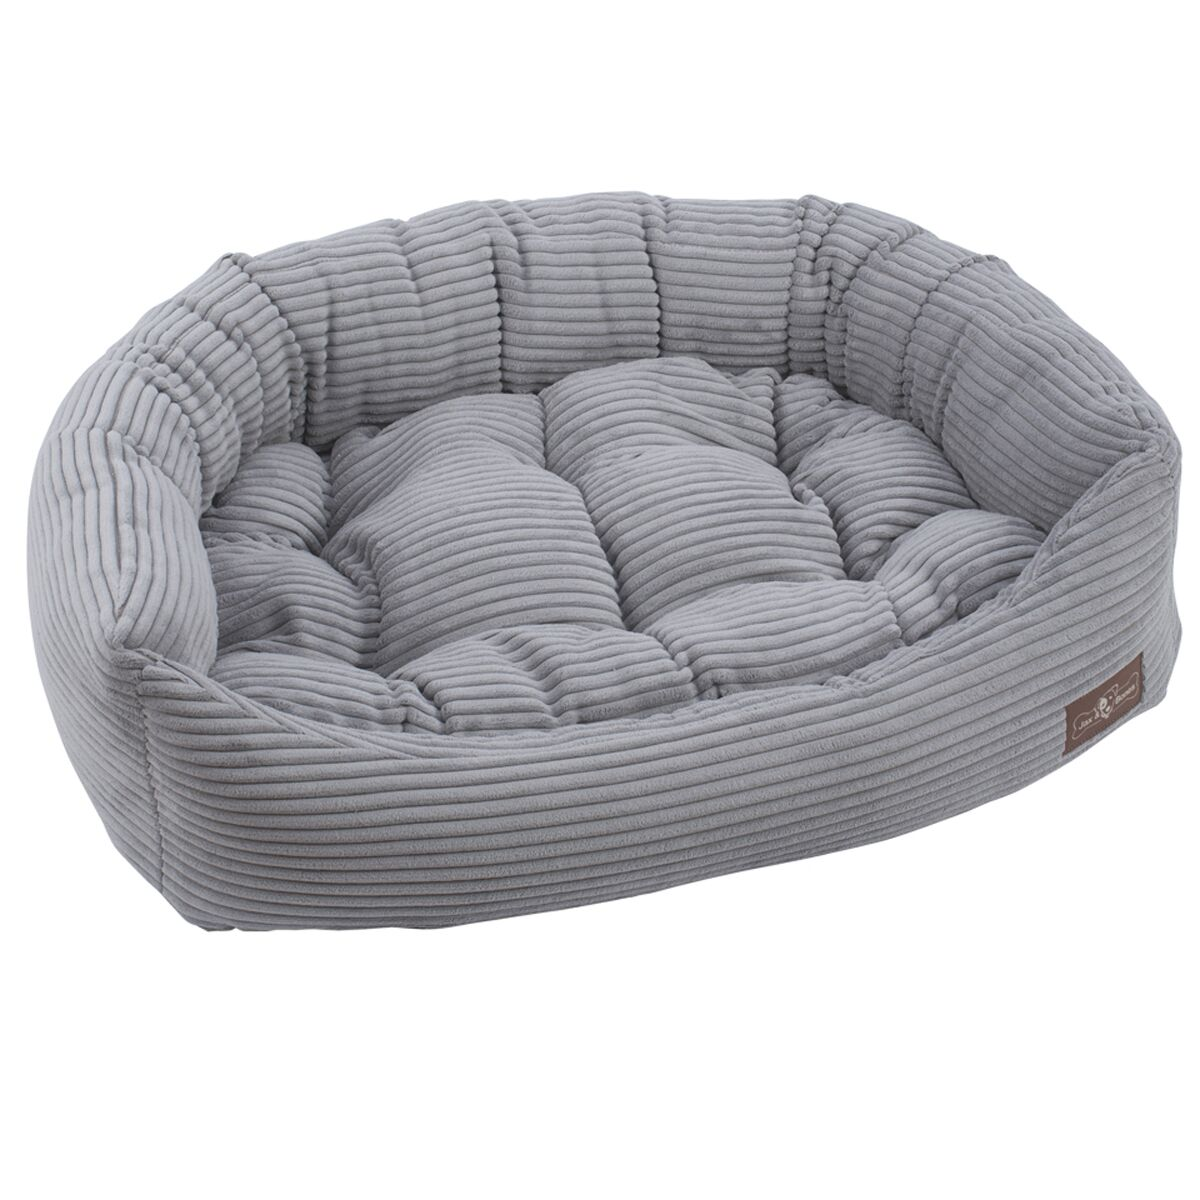 Corduroy Napper Bed Bolster Color: Dove Grey, Size: Small - 21